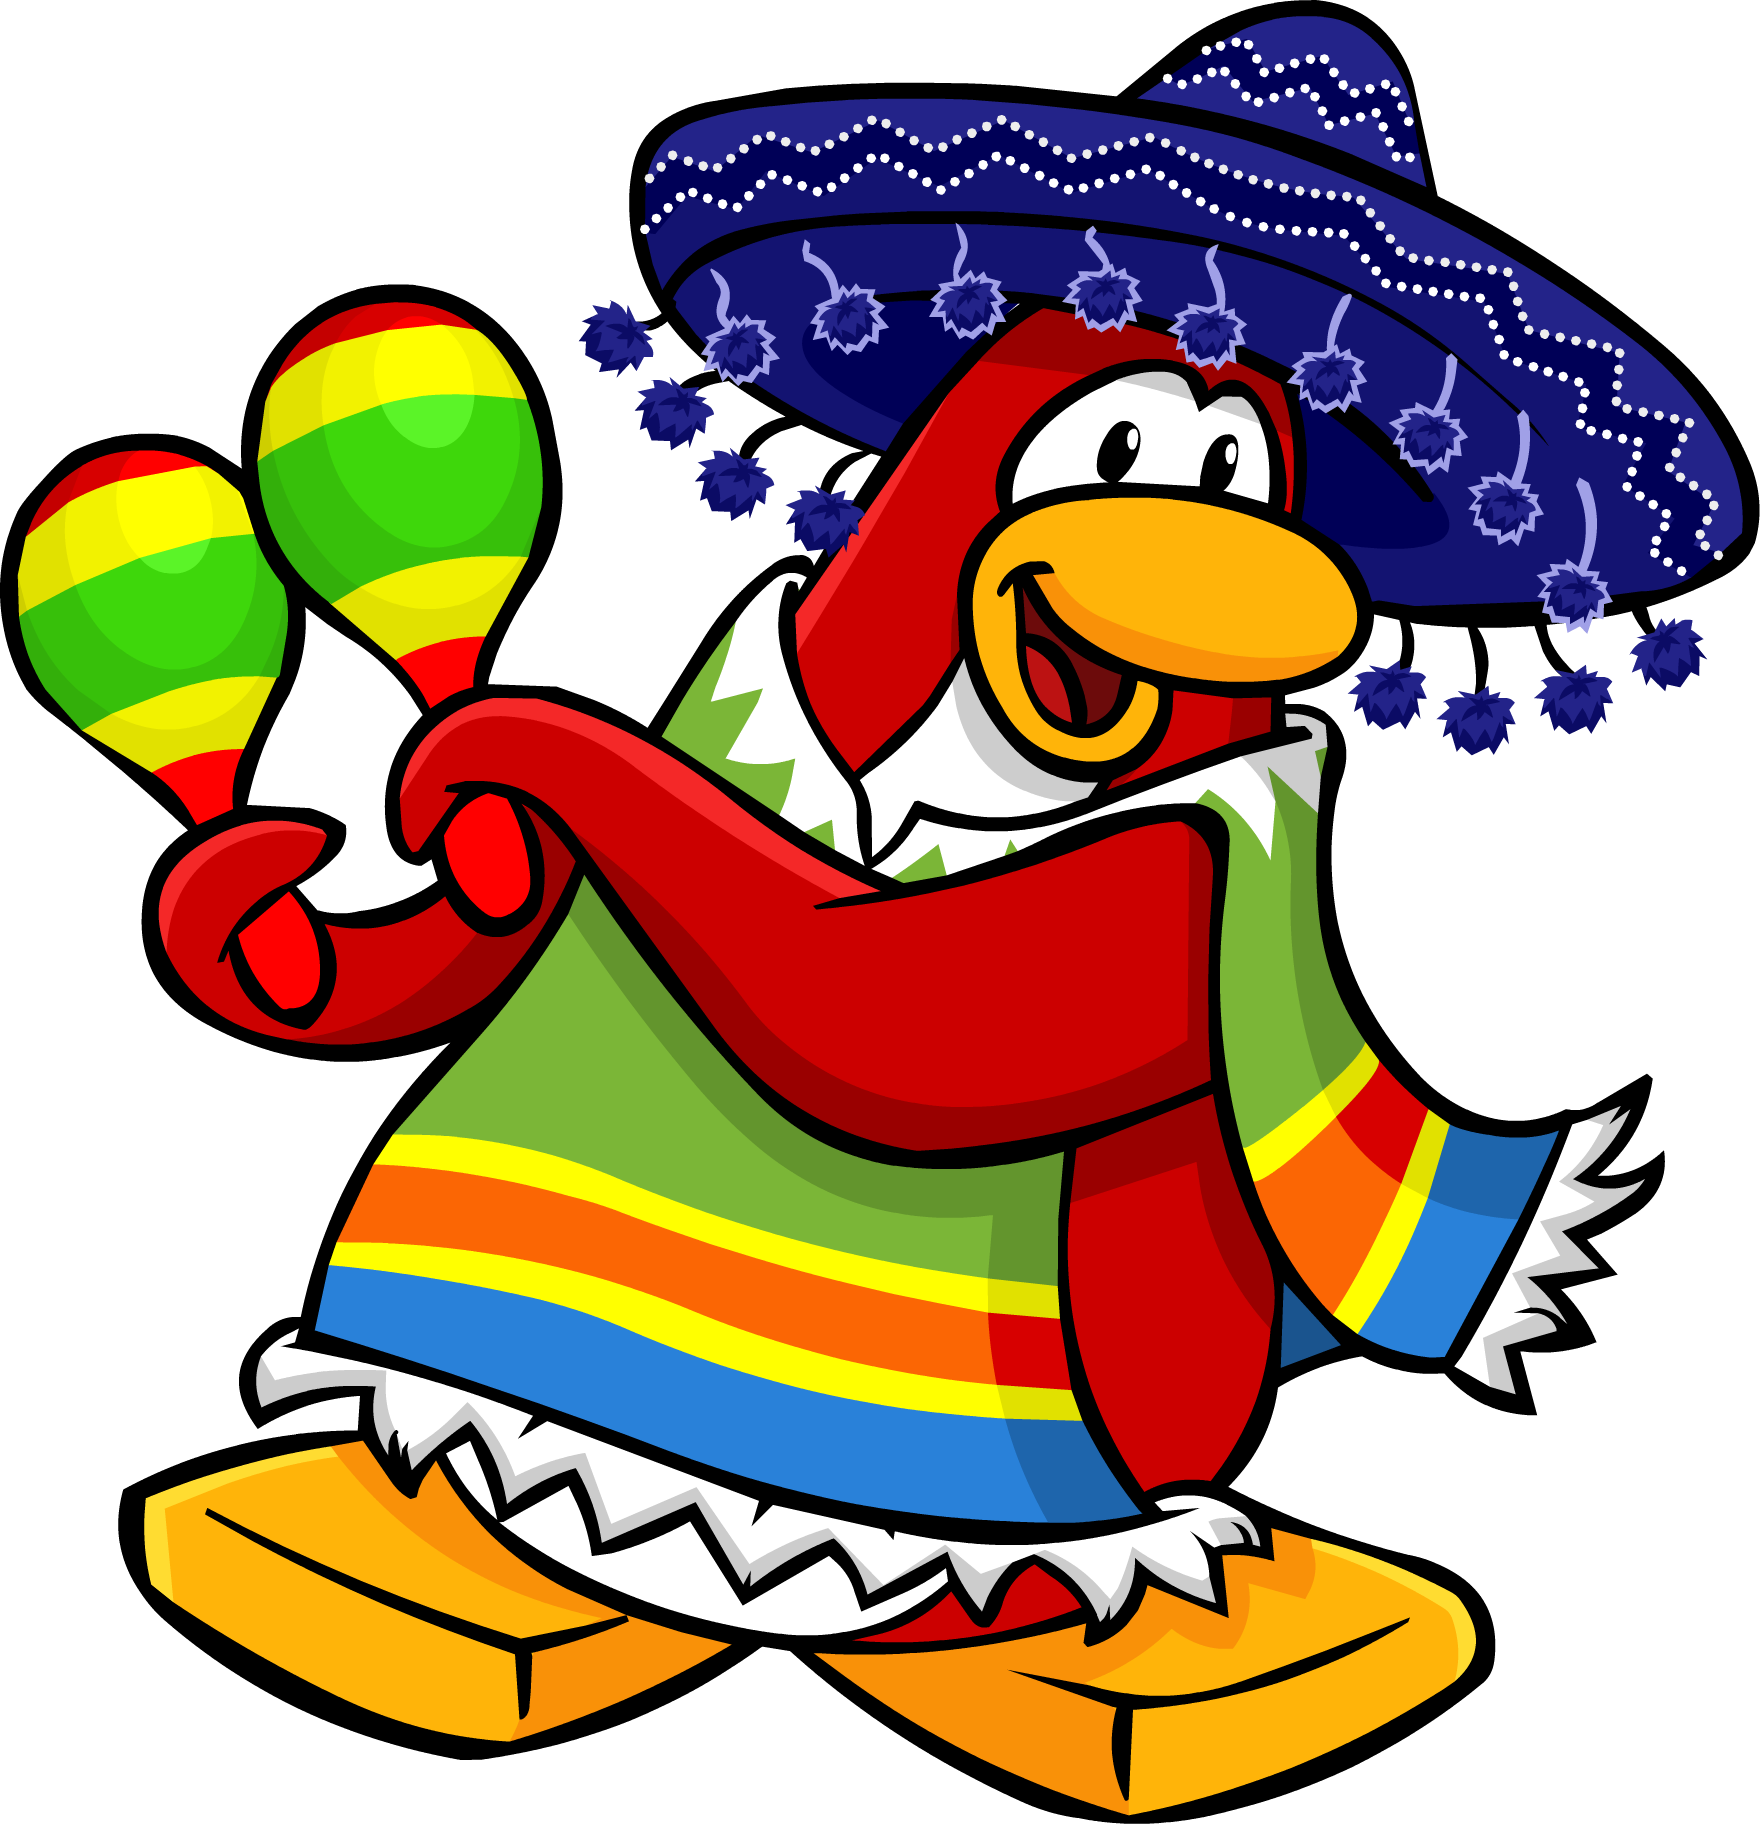 Pin by Cuco's Taqueria on Events | Club penguin wiki, Club penguin, Cute pictures